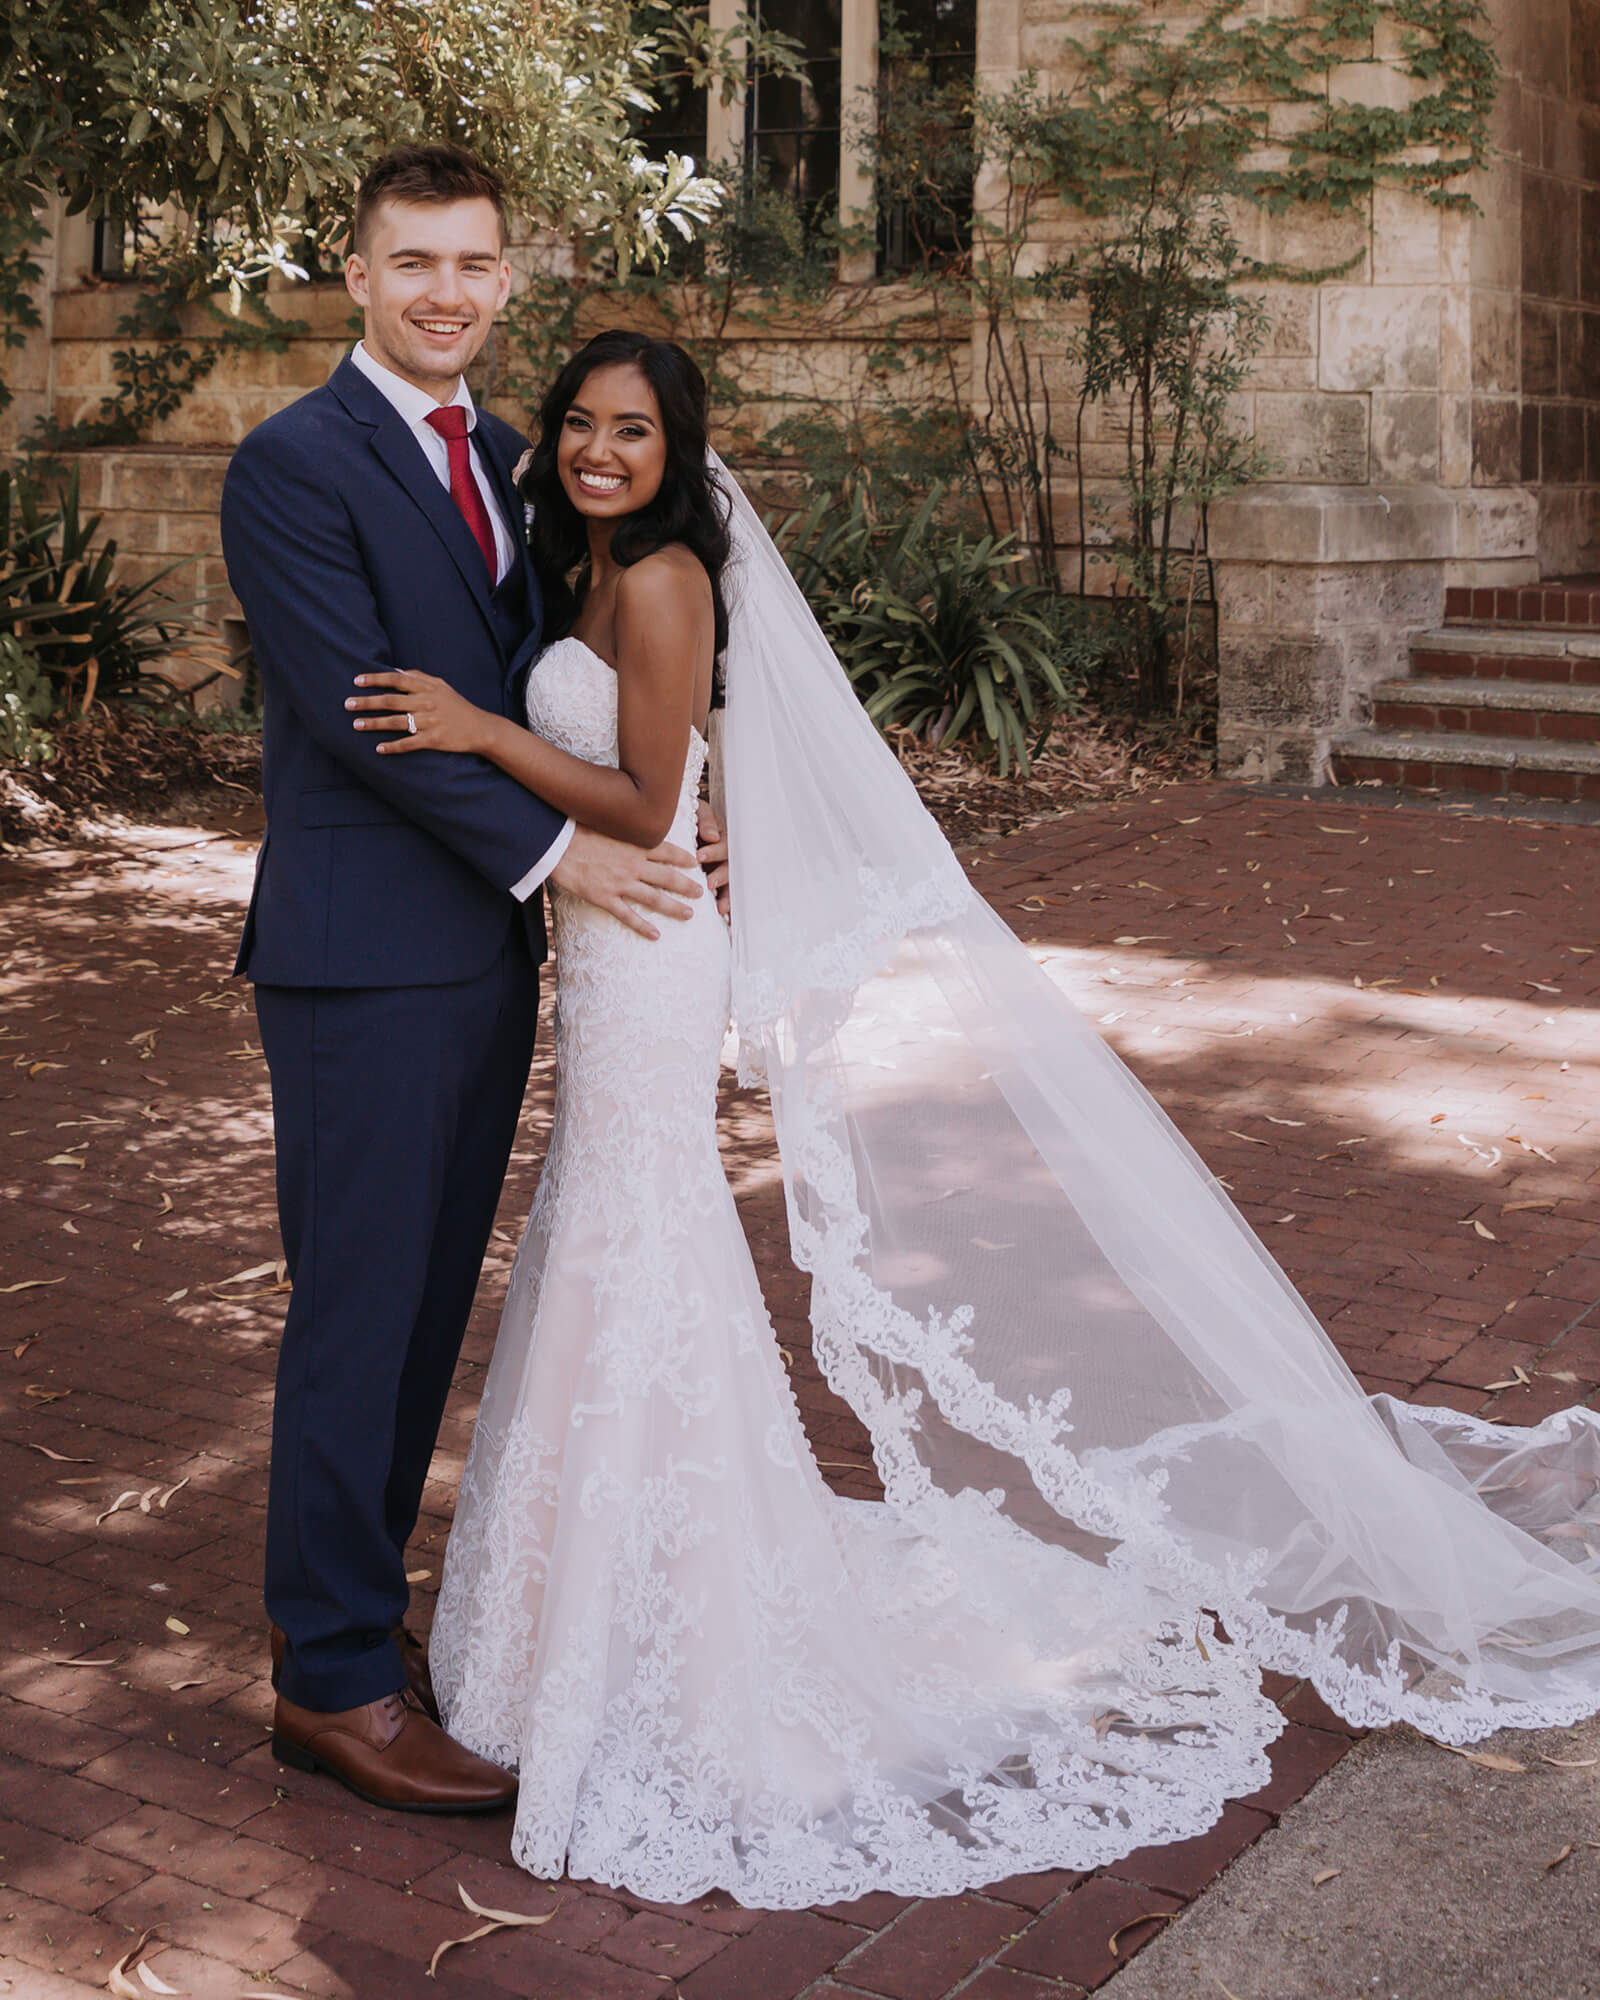 Congrats to this sweet couple!